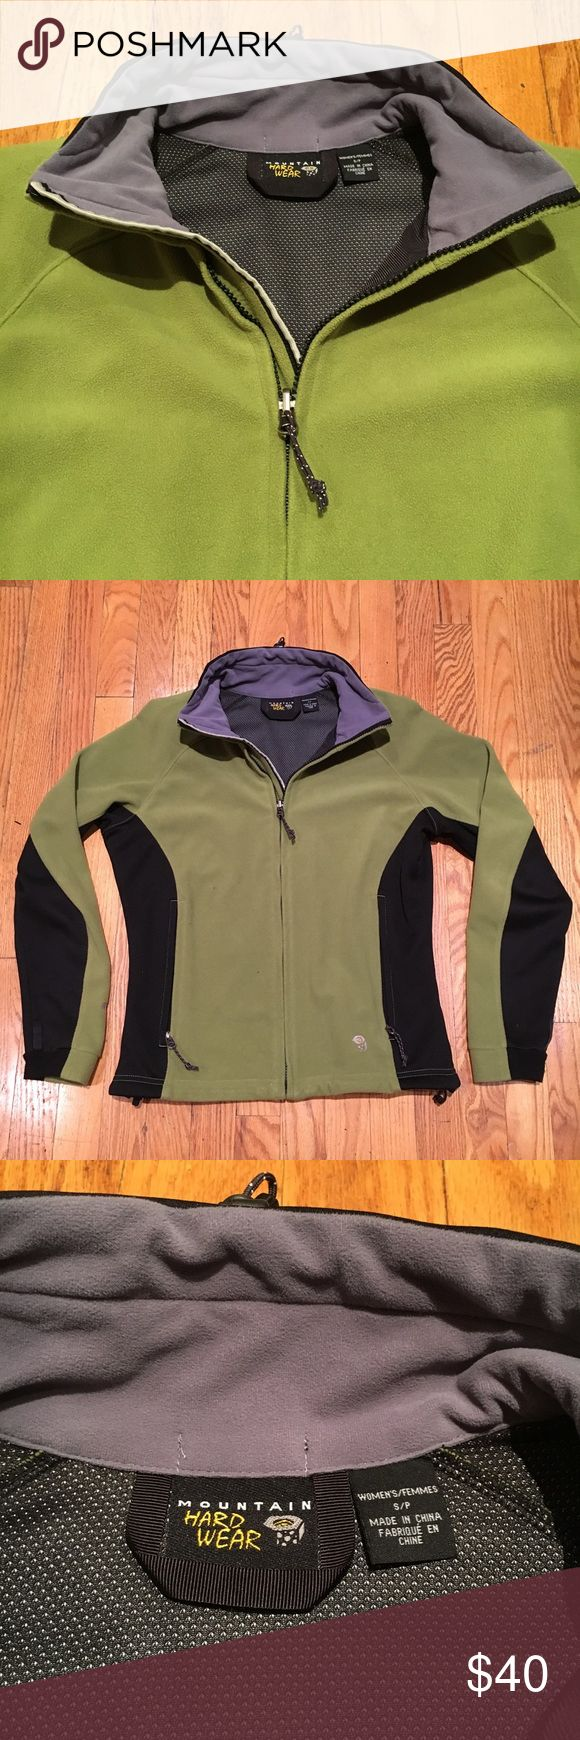 Mountain Hard Ware zip pullover Excellent condition; it has been a great jacket. Comfy and light, great for fall. The color is more accurately depicted in the first photo, it's a vibrant green. Mountain Hardwear Jackets & Coats Utility Jackets